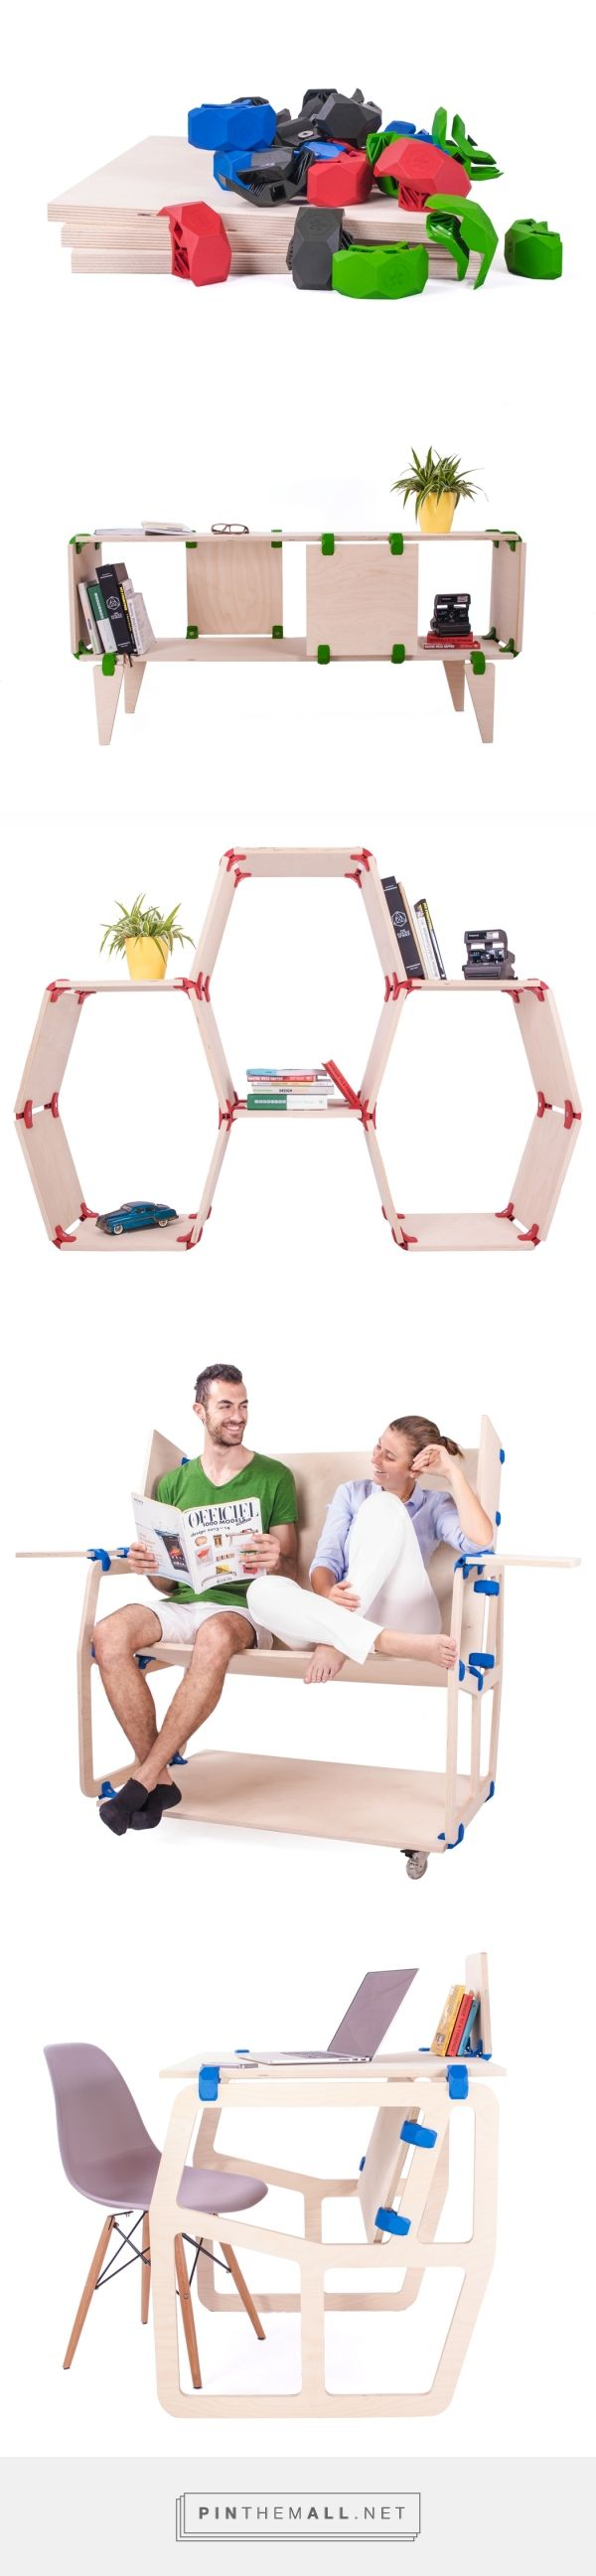 Tinker Toys For Adults? | Yanko Design - created via https://pinthemall.net